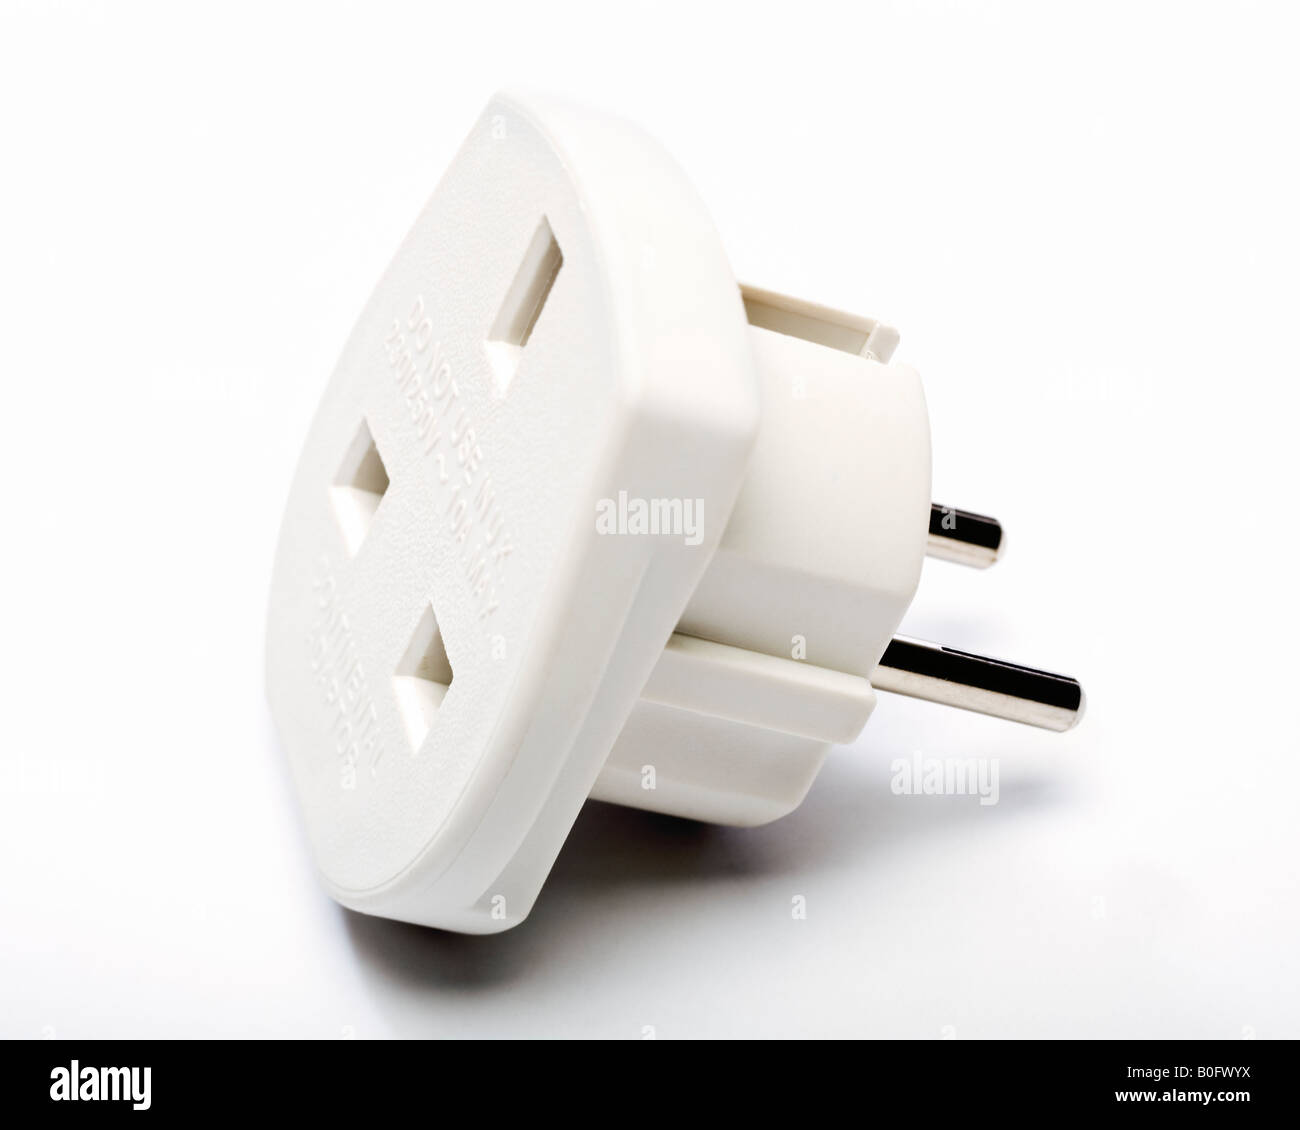 2-Way Voyage Europe Adaptateur 2 broches Euro Style à Double 3 Broches UK socket